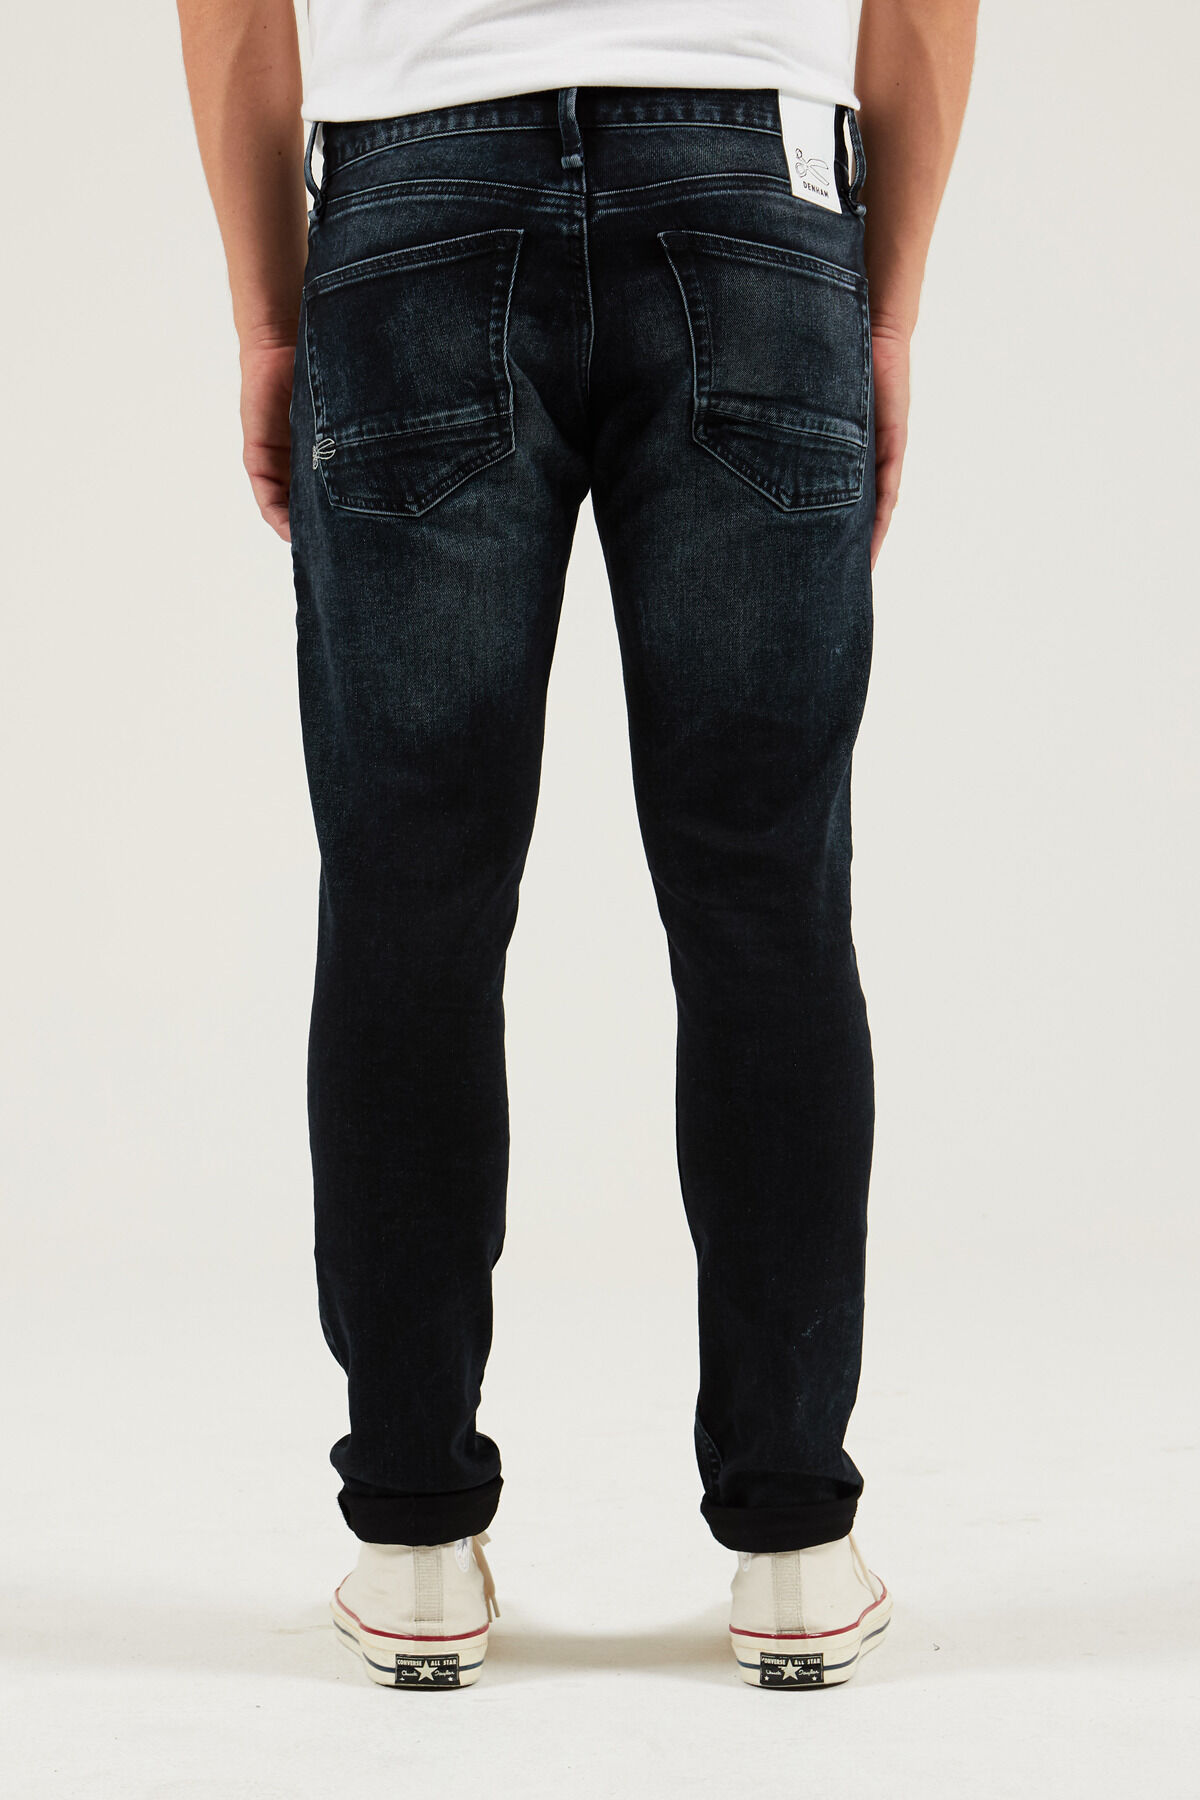 YORK Blue-black, blue fade - Slim, Tapered Fit